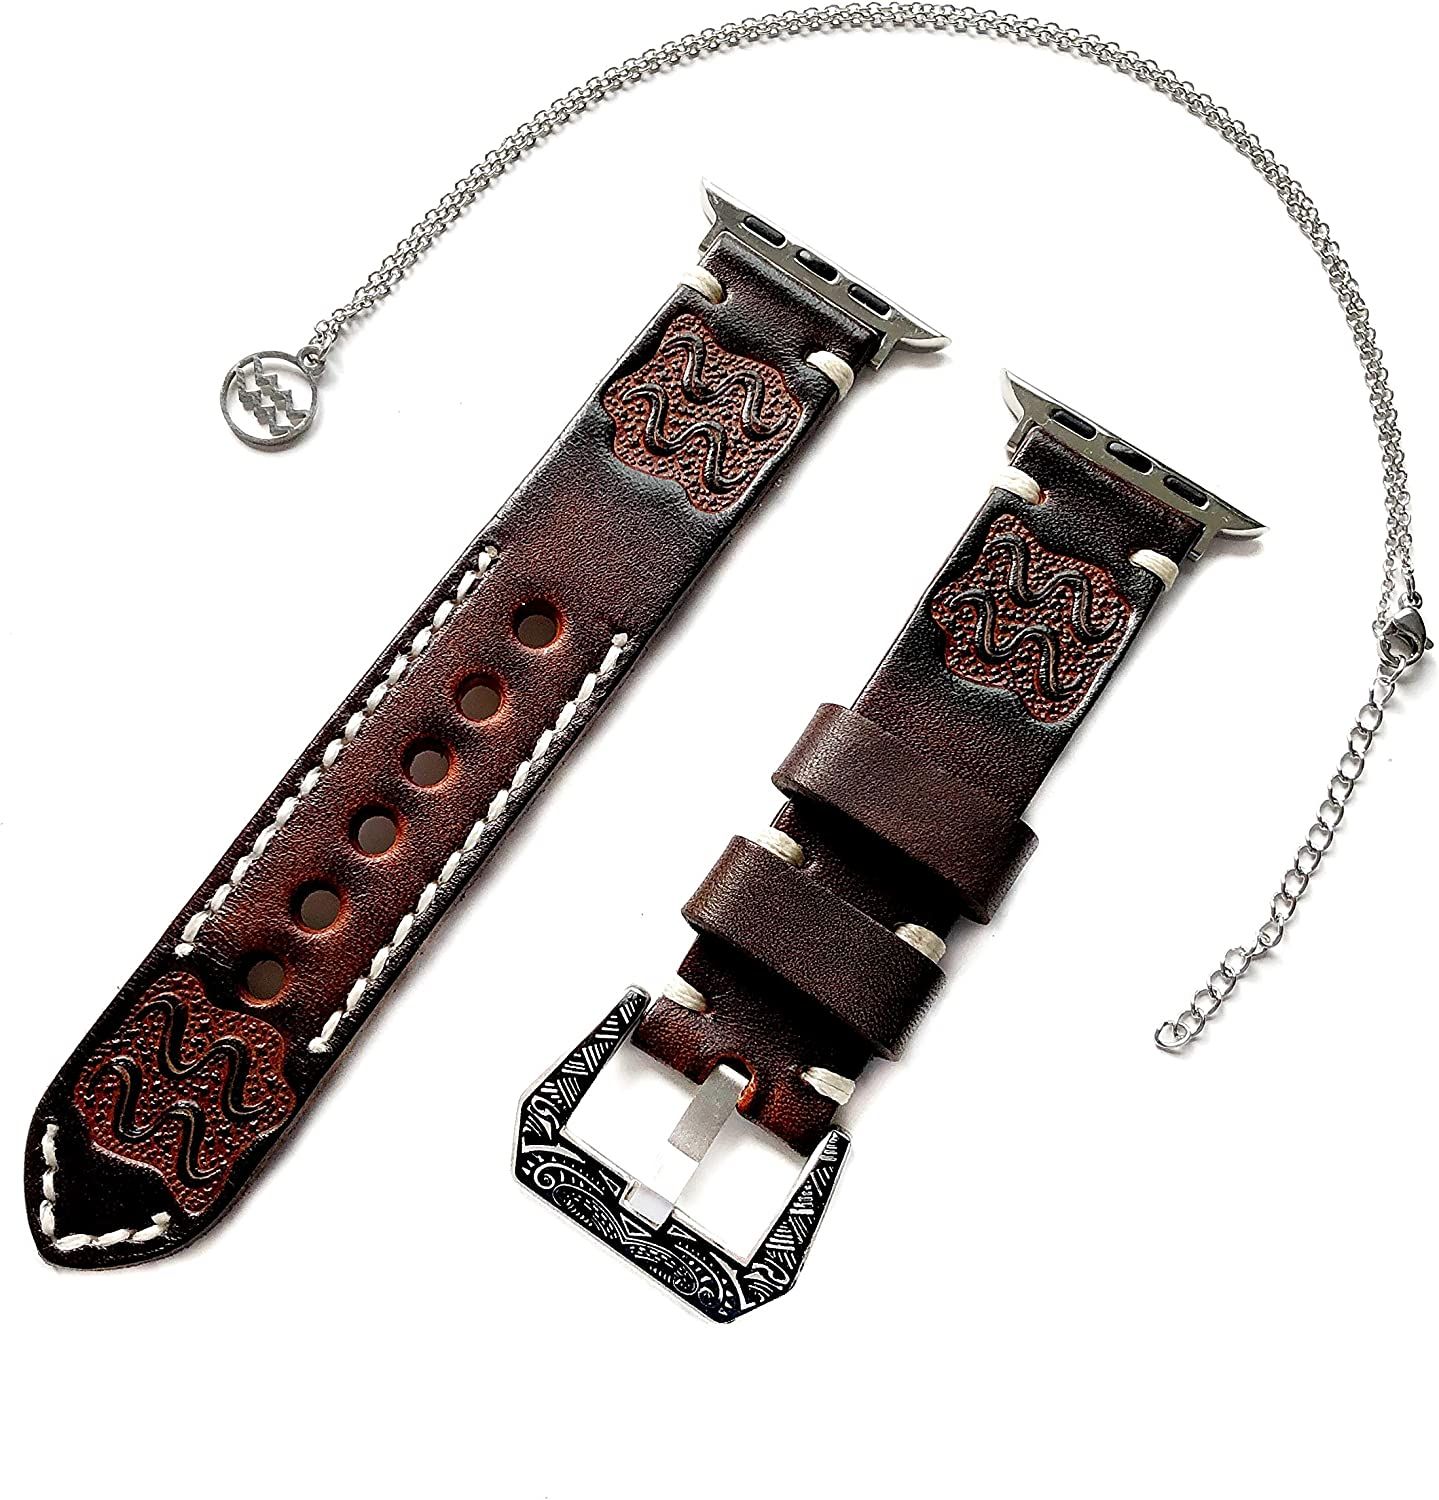 """Aquarius Zodiac Band Set Compatible with Apple Watch 38mm 40mm 42mm 44mm iWatch 1 2 3 4 Series Brown Leather Embossed Strap and 25"""" Necklace (1. Engraved Silver Color Buckle, 42mm Watch Case Size)"""